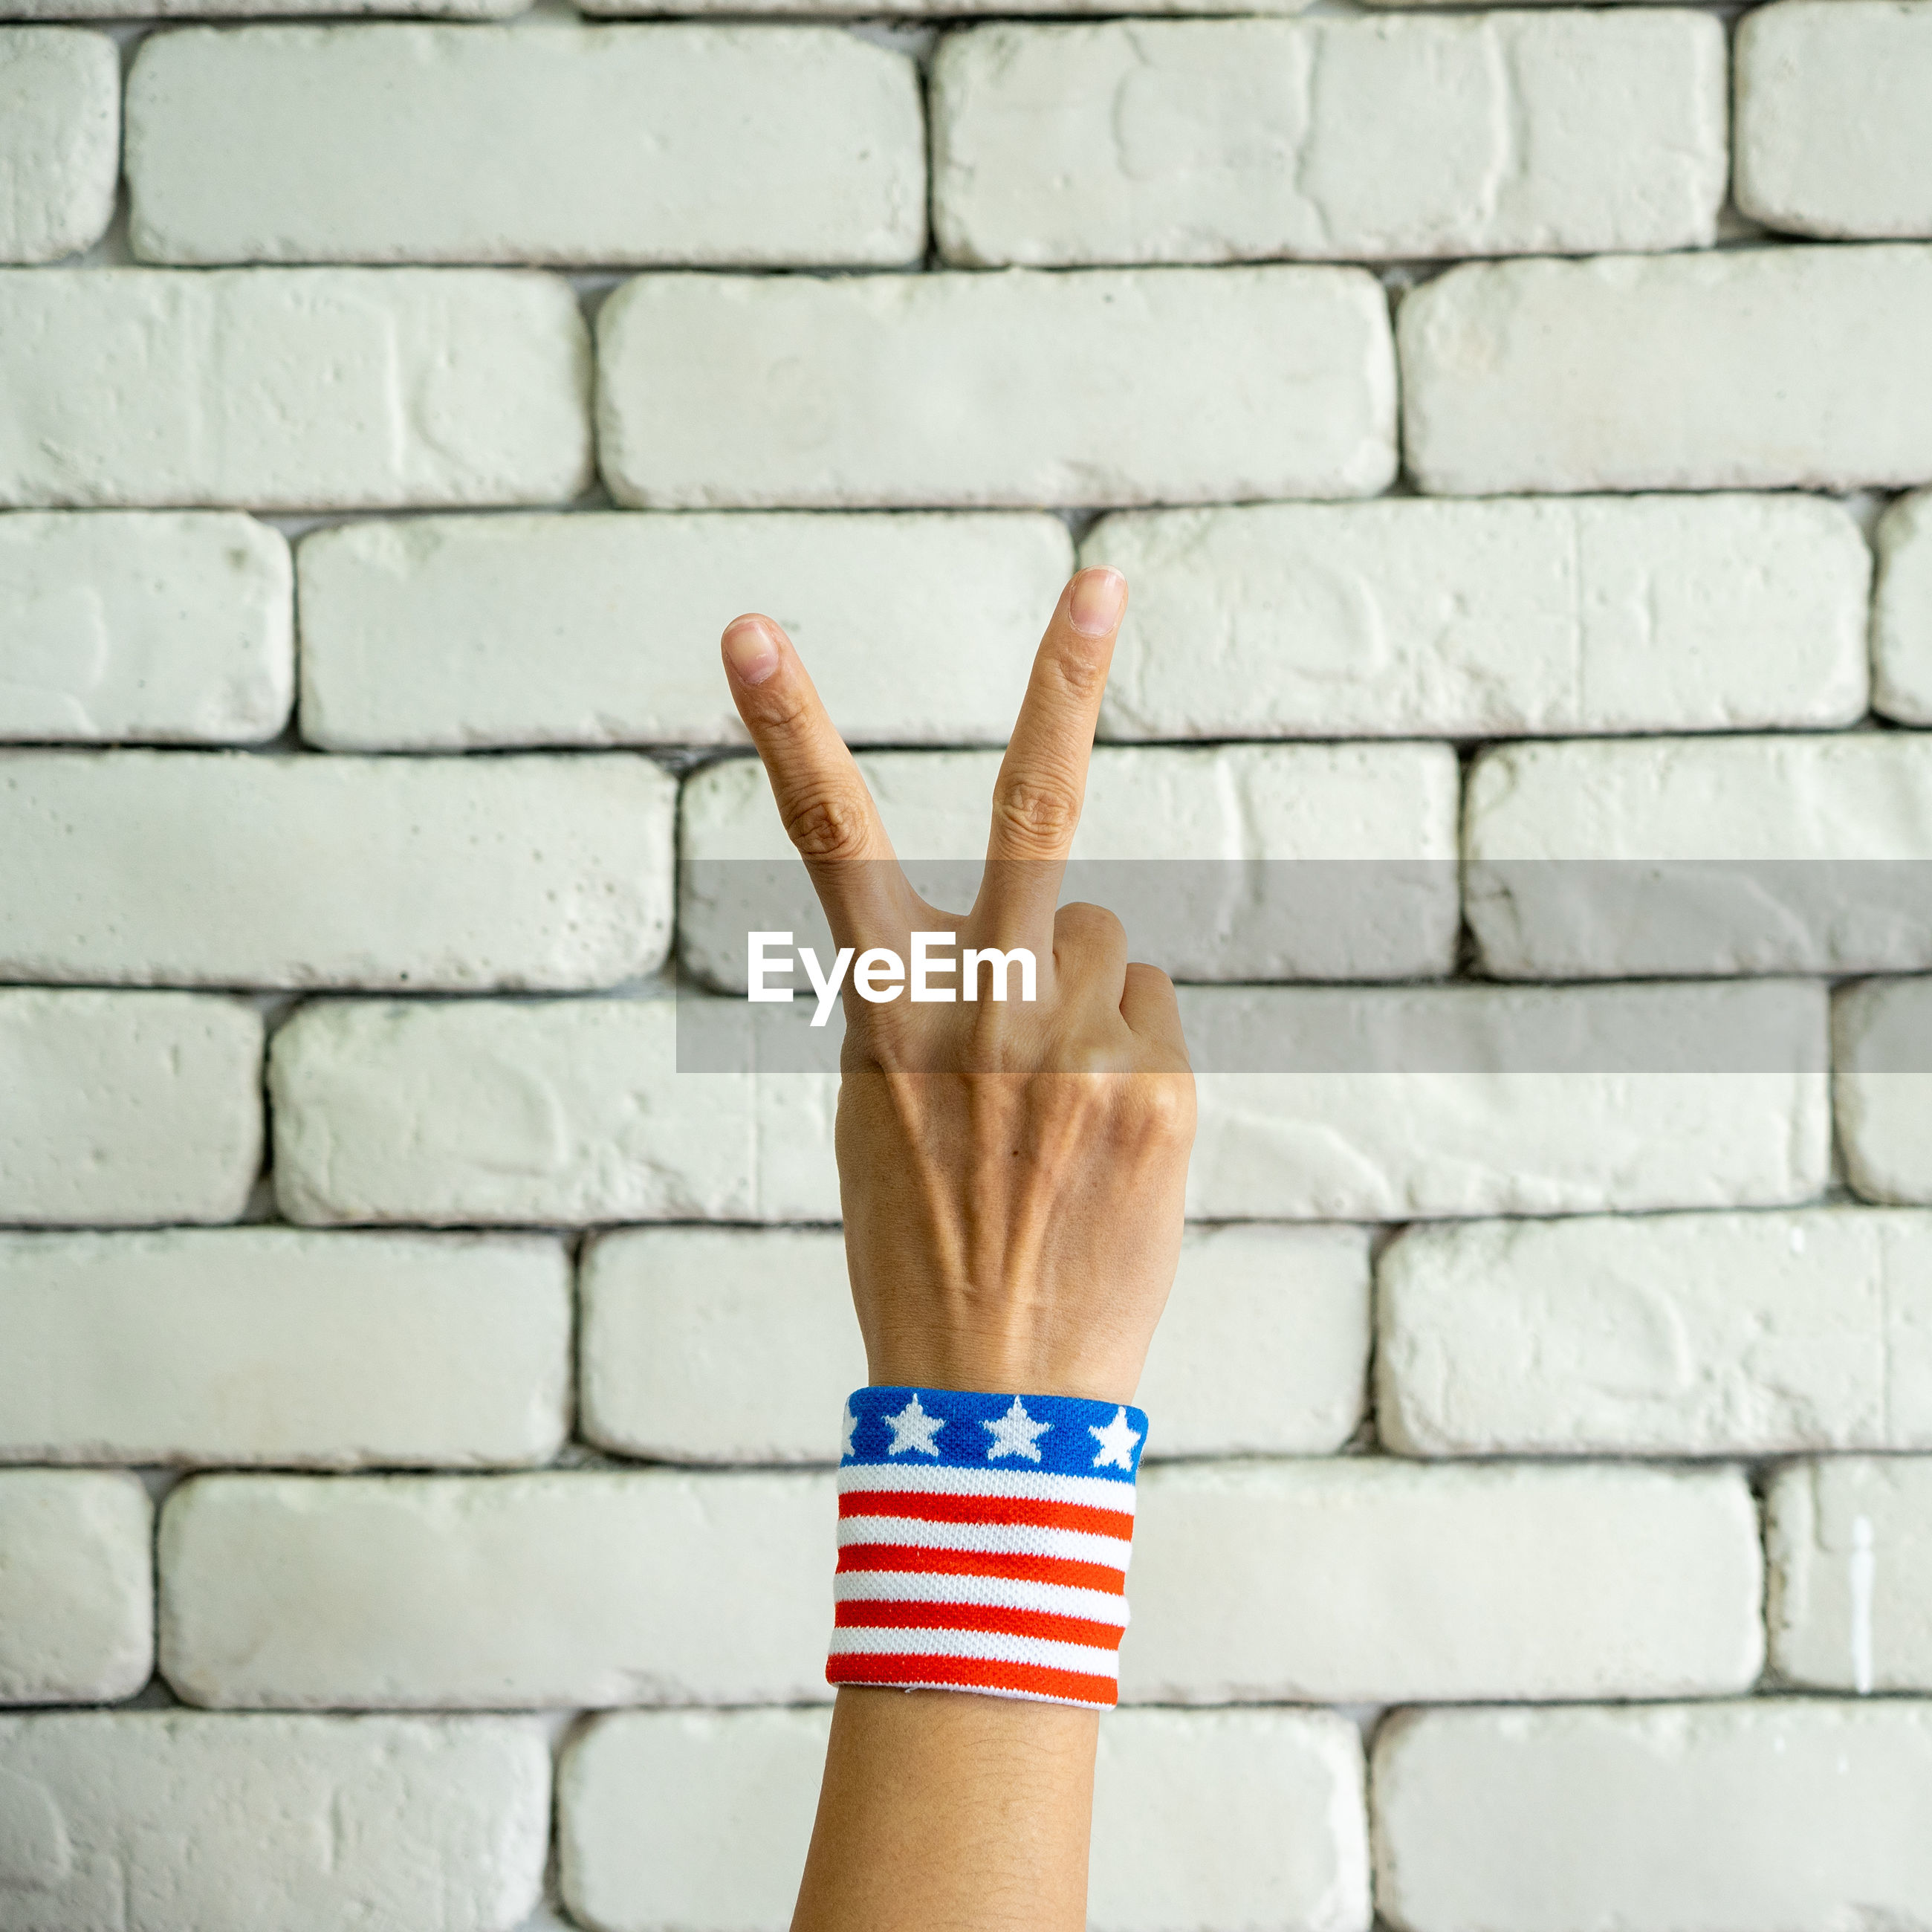 Cropped hand gesturing against brick wall